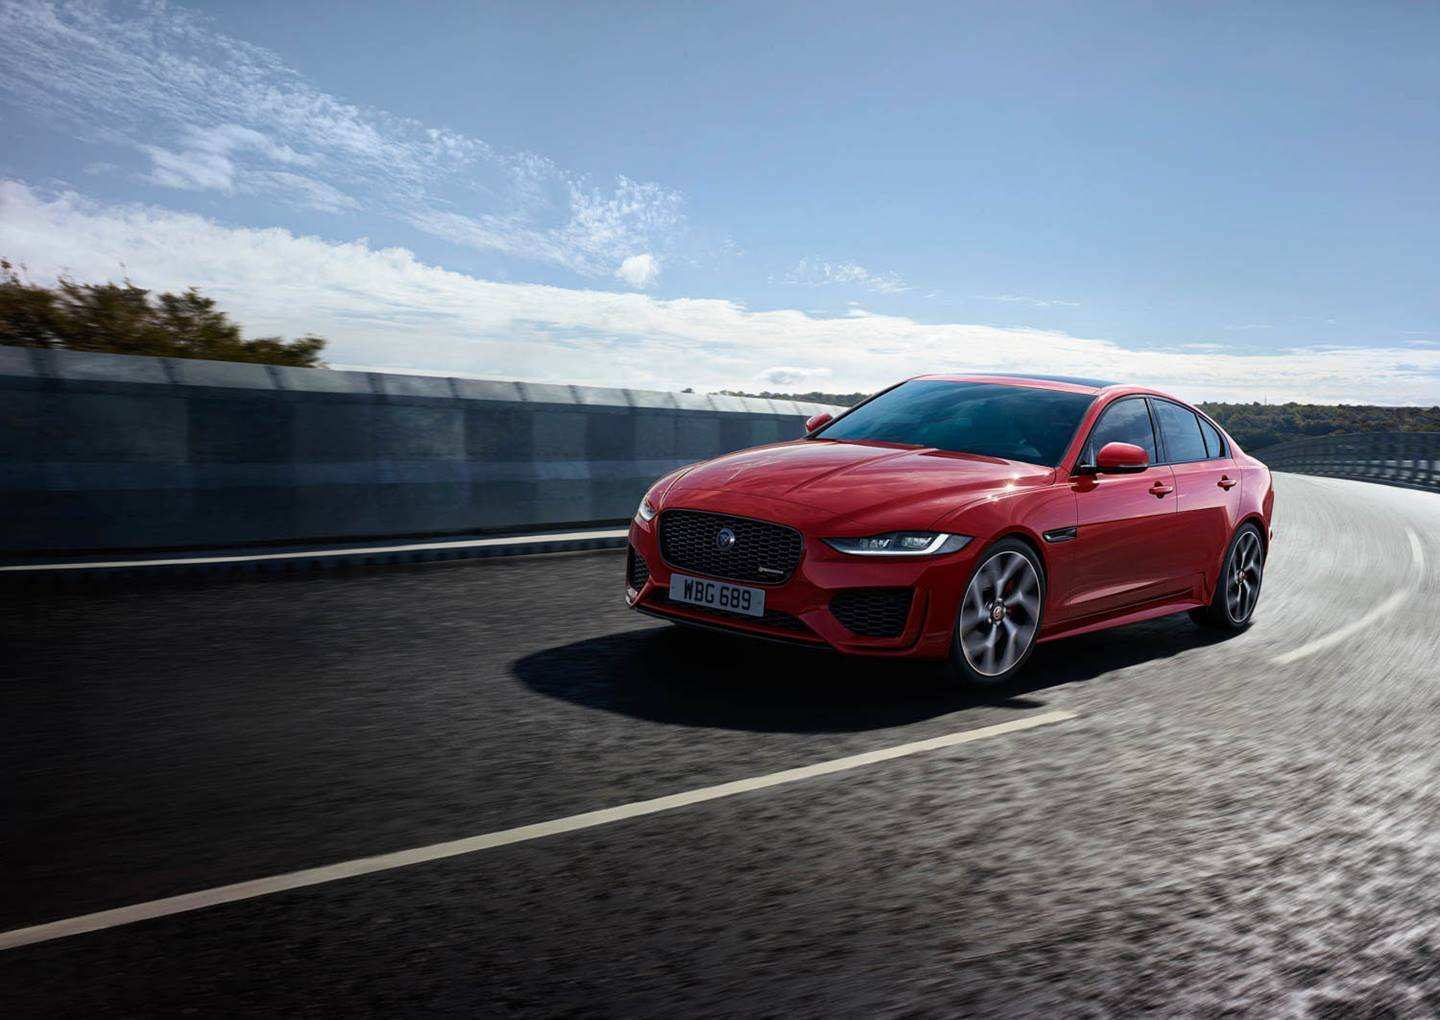 32 A 2020 Jaguar Xe Sedan Price And Release Date